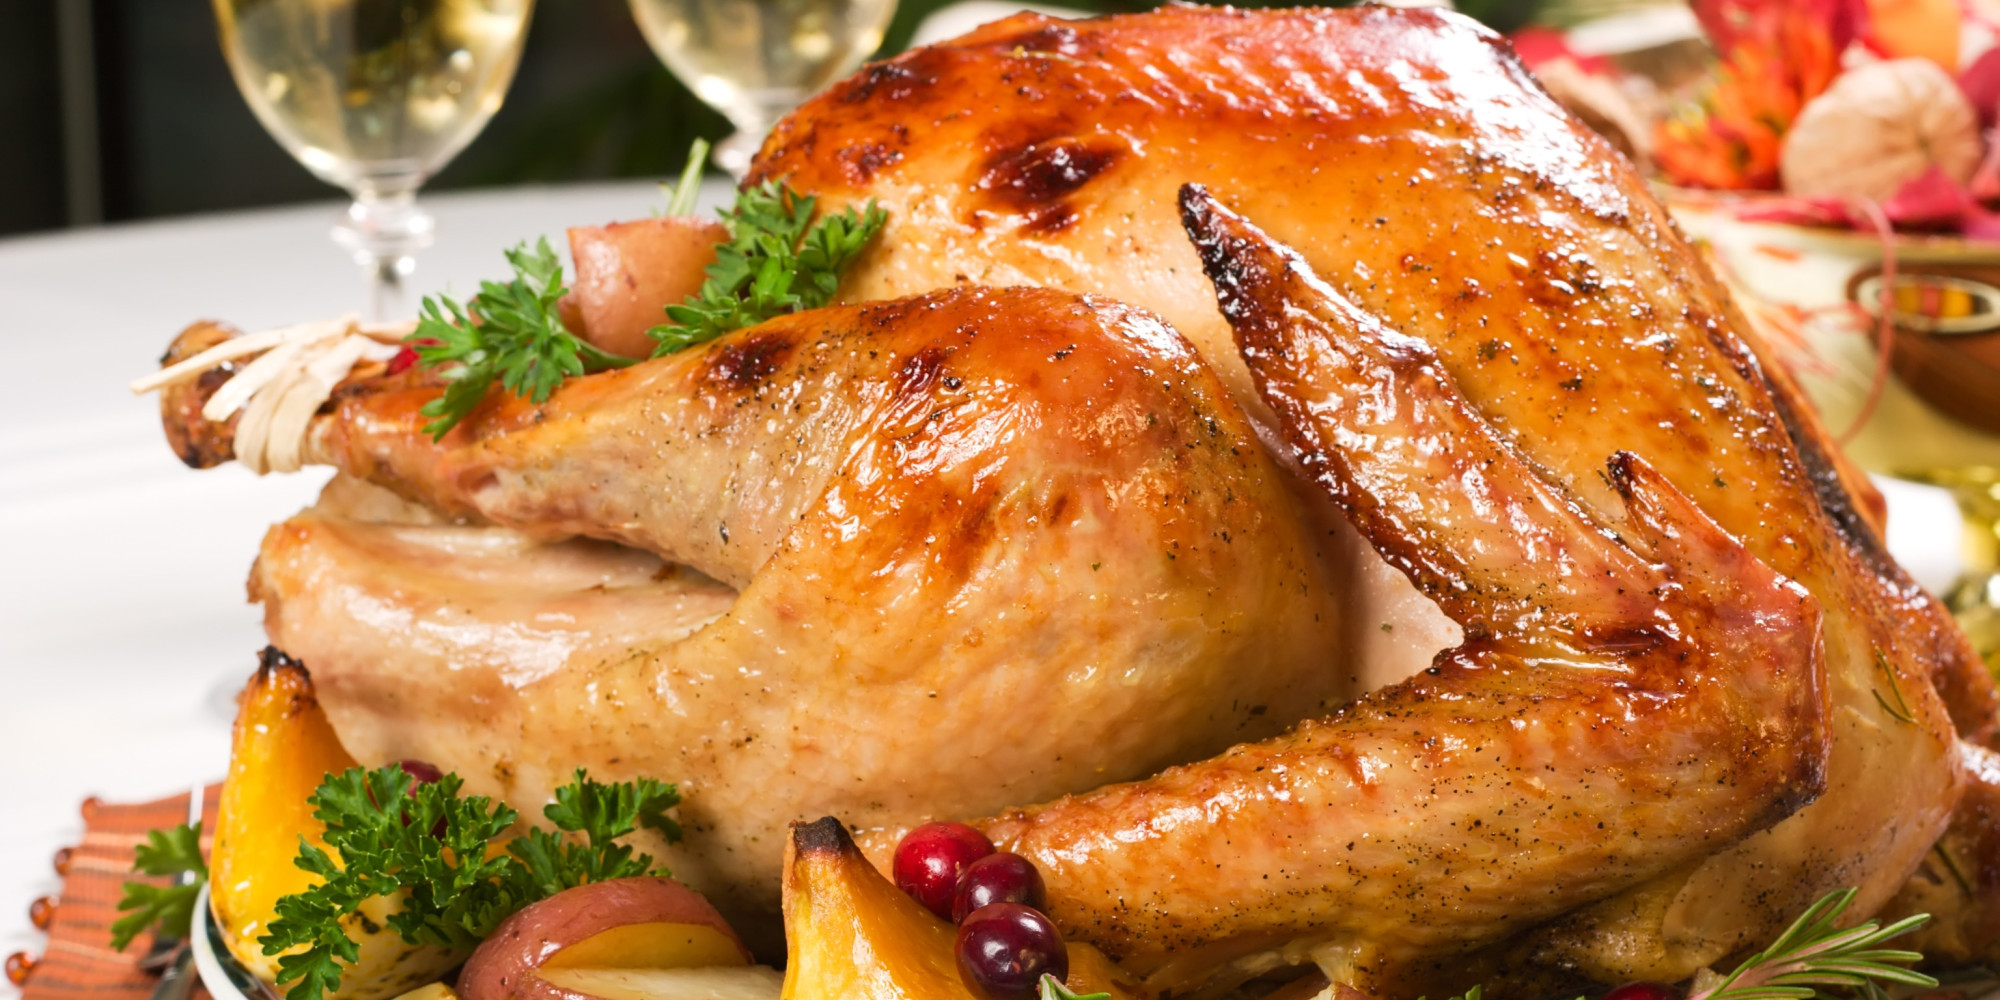 Why Turkey On Thanksgiving  48 835 Reasons to Enjoy Lots of Food This Thanksgiving